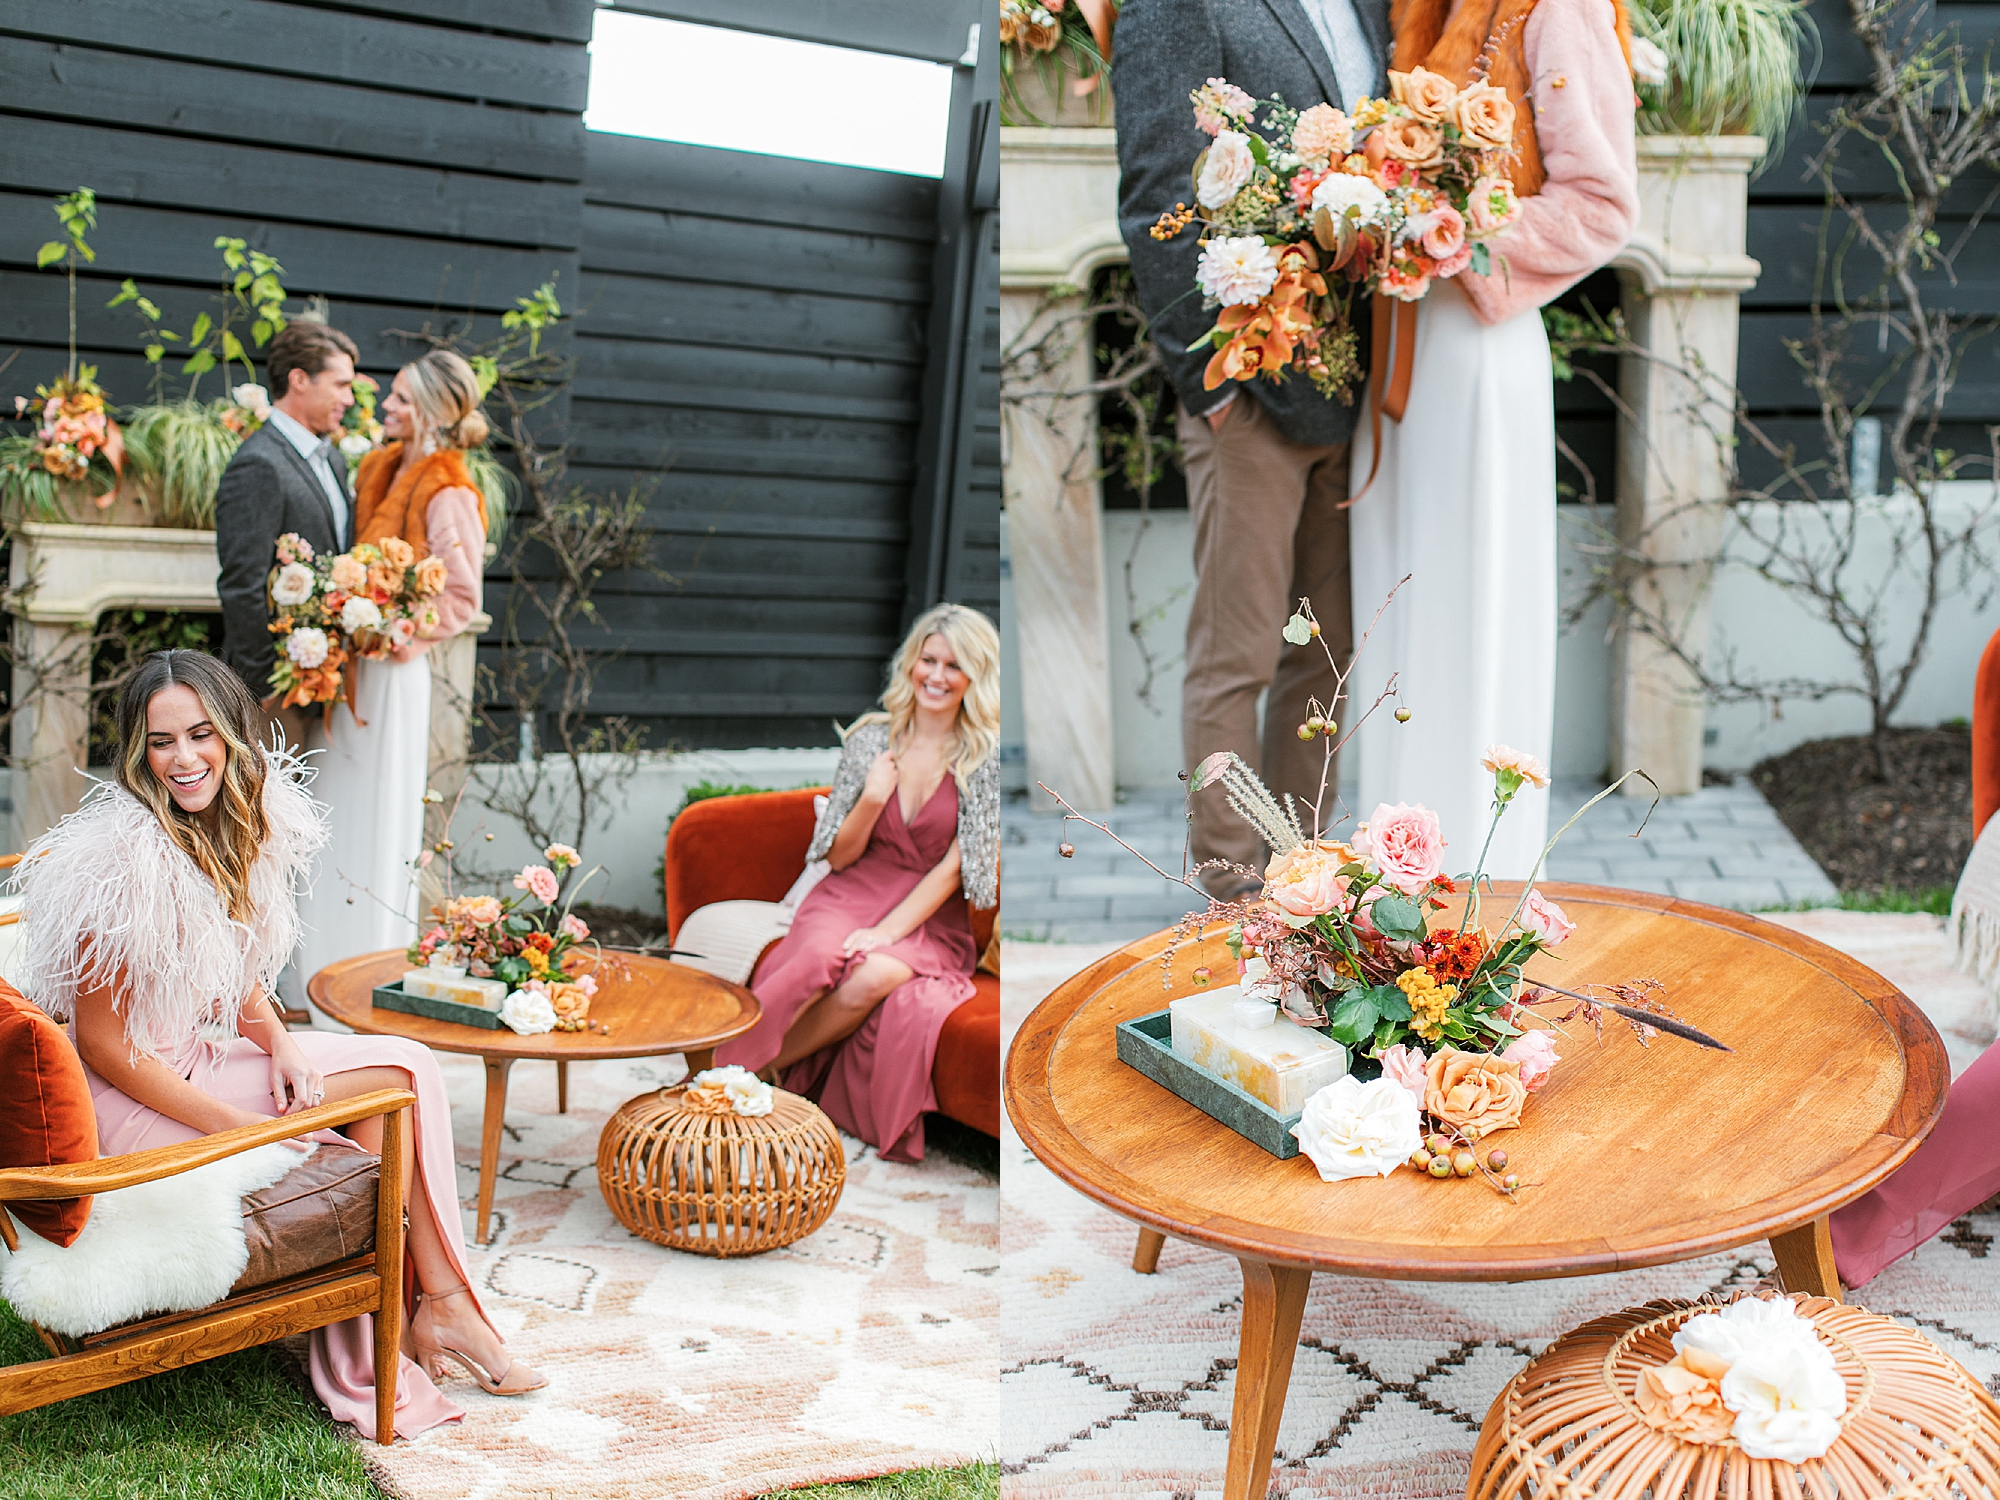 Terrain at Devon Yards Wedding Photographer Magdalena Studios Film Photos with Shannon Wellington Weddings0025 1